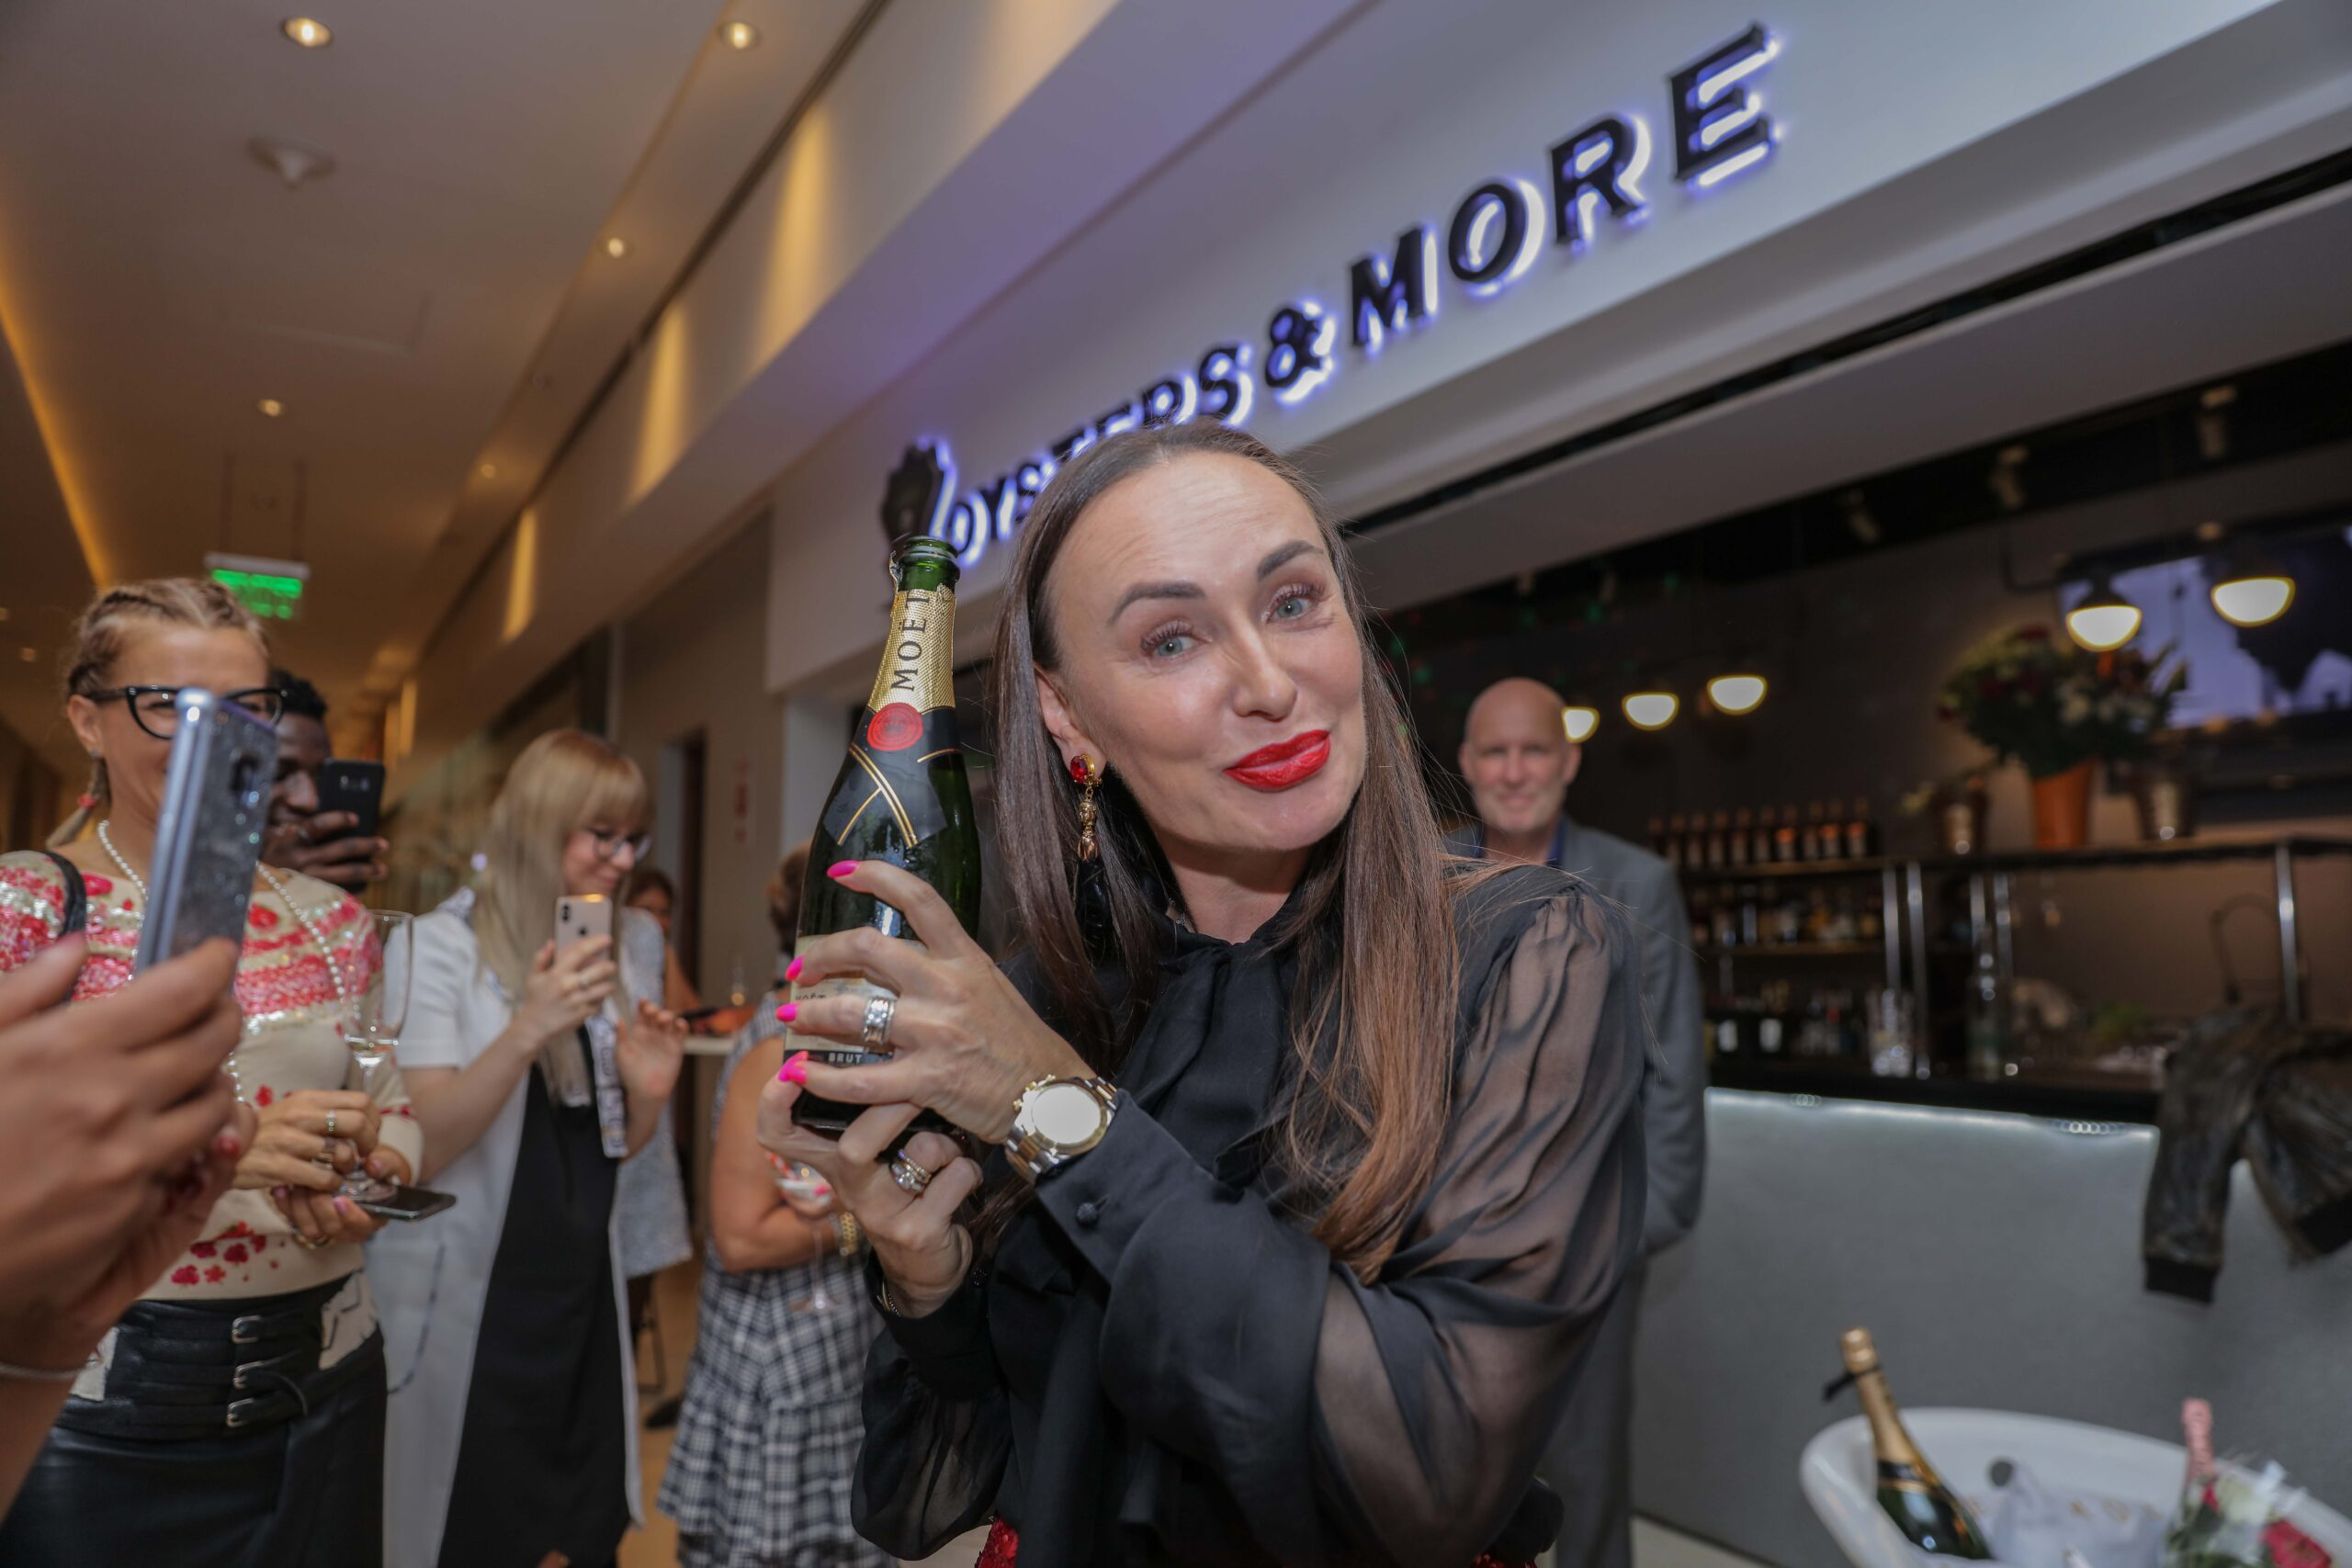 Moet & Chandon ink partnership with premier restaurant Oysters & More